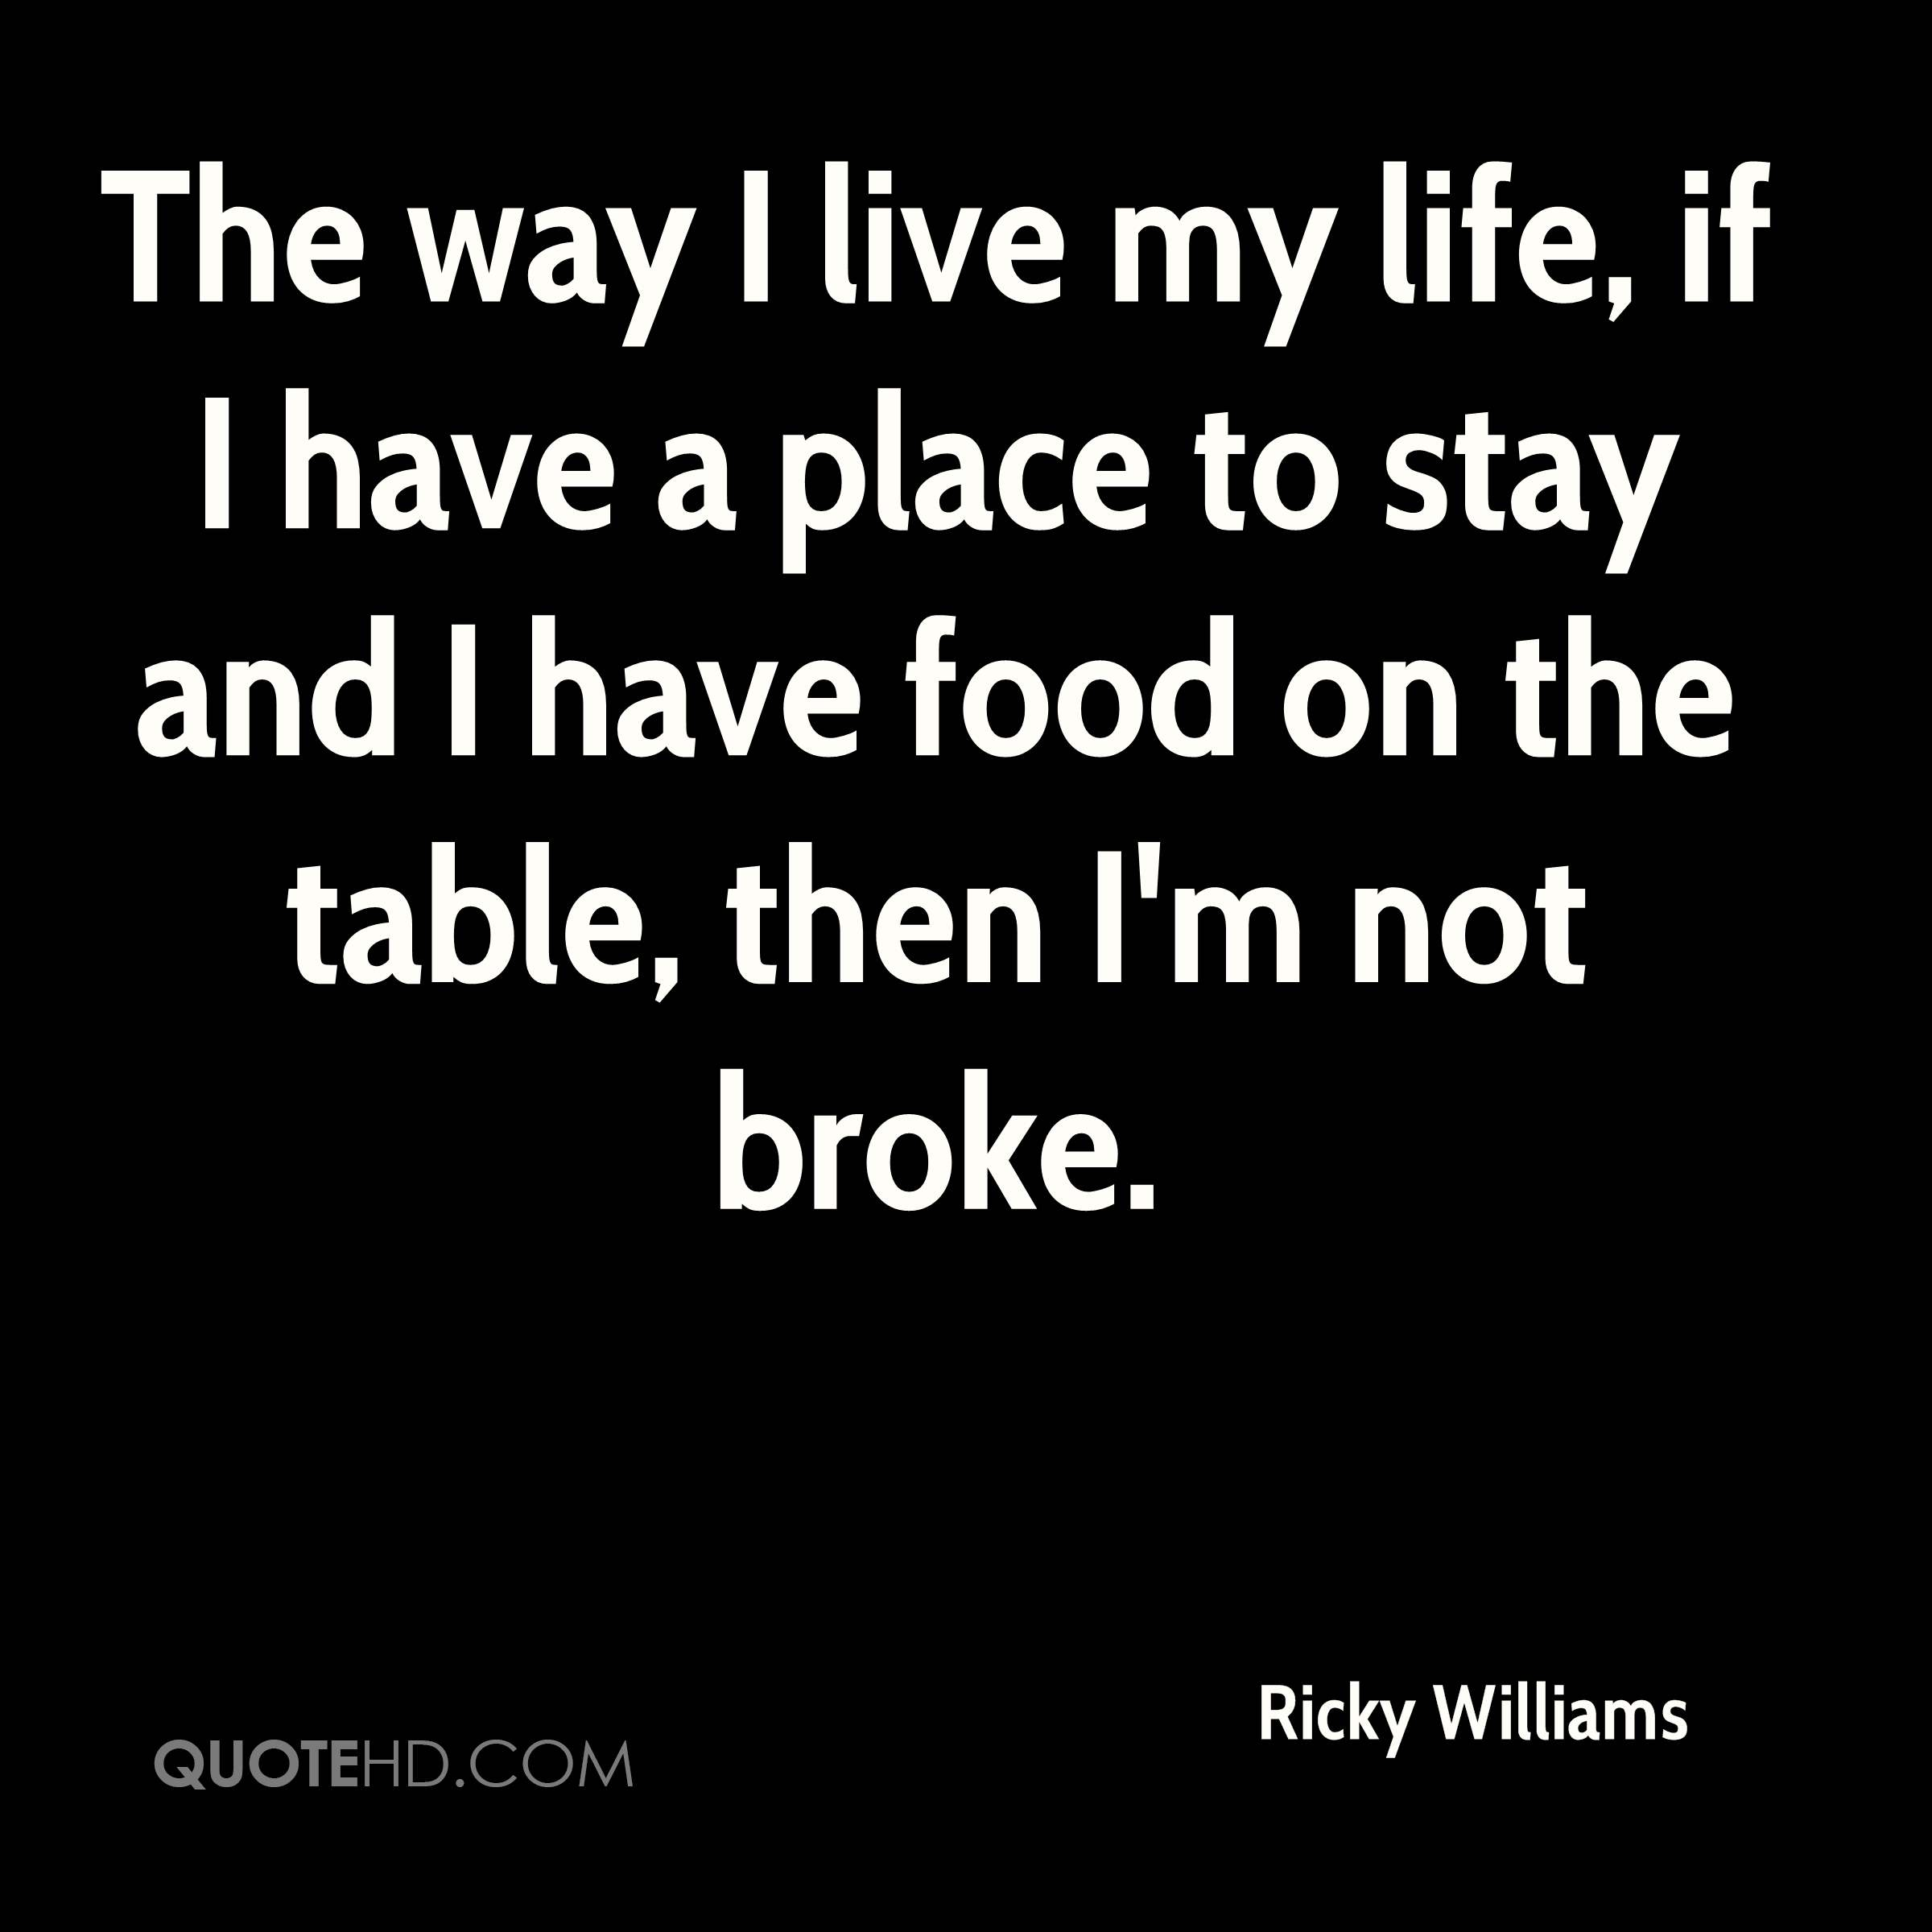 Quotes On How To Live Life Ricky Williams Life Quotes  Quotehd